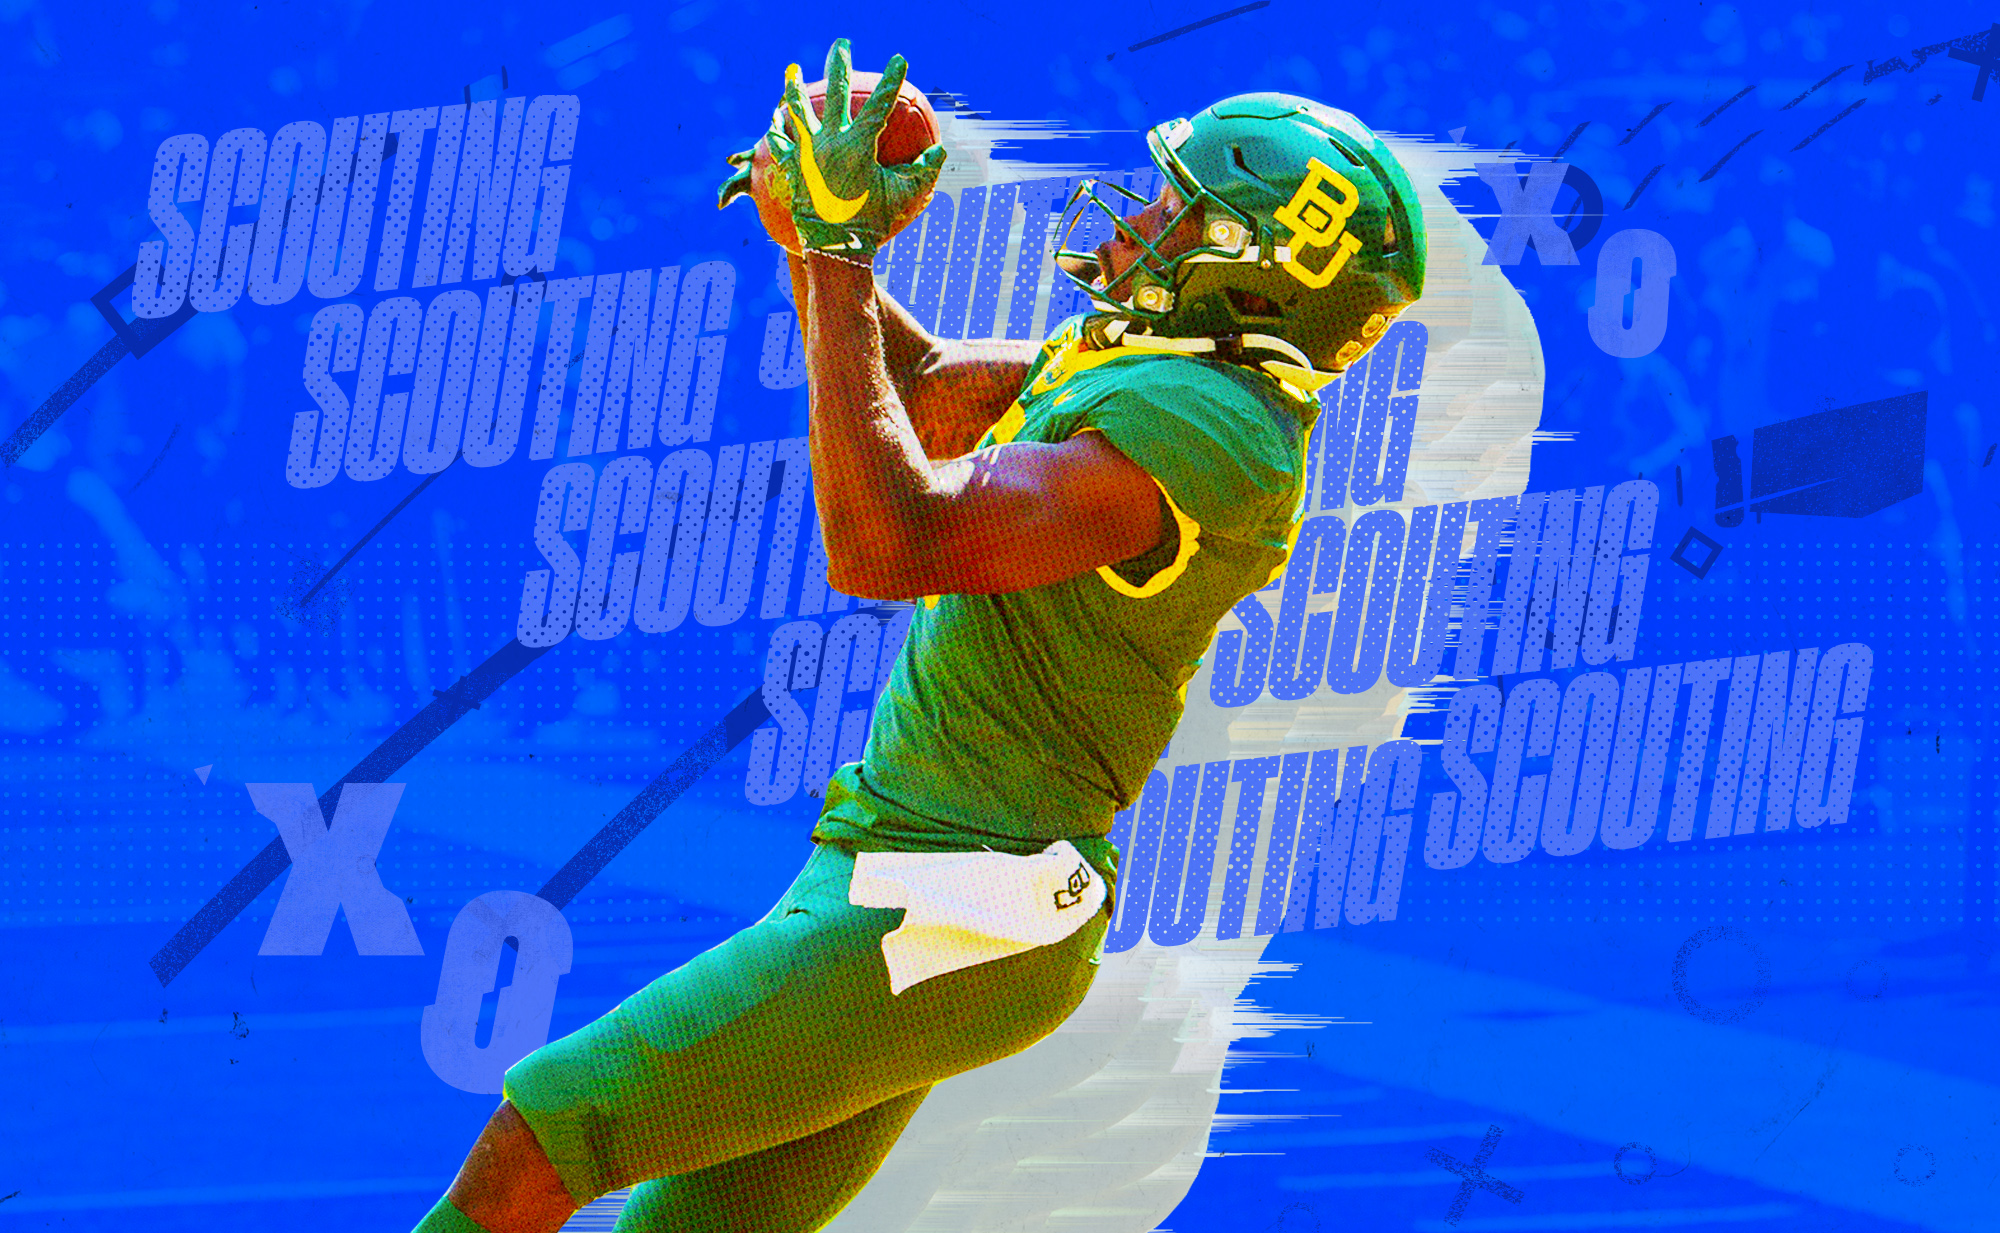 """Artwork of NFL WR prospect Denzel Mims catching a TD at Baylor, superimposed on a blue background with """"SCOUTING"""" and """"X""""s and """"O""""s in gray lettering"""